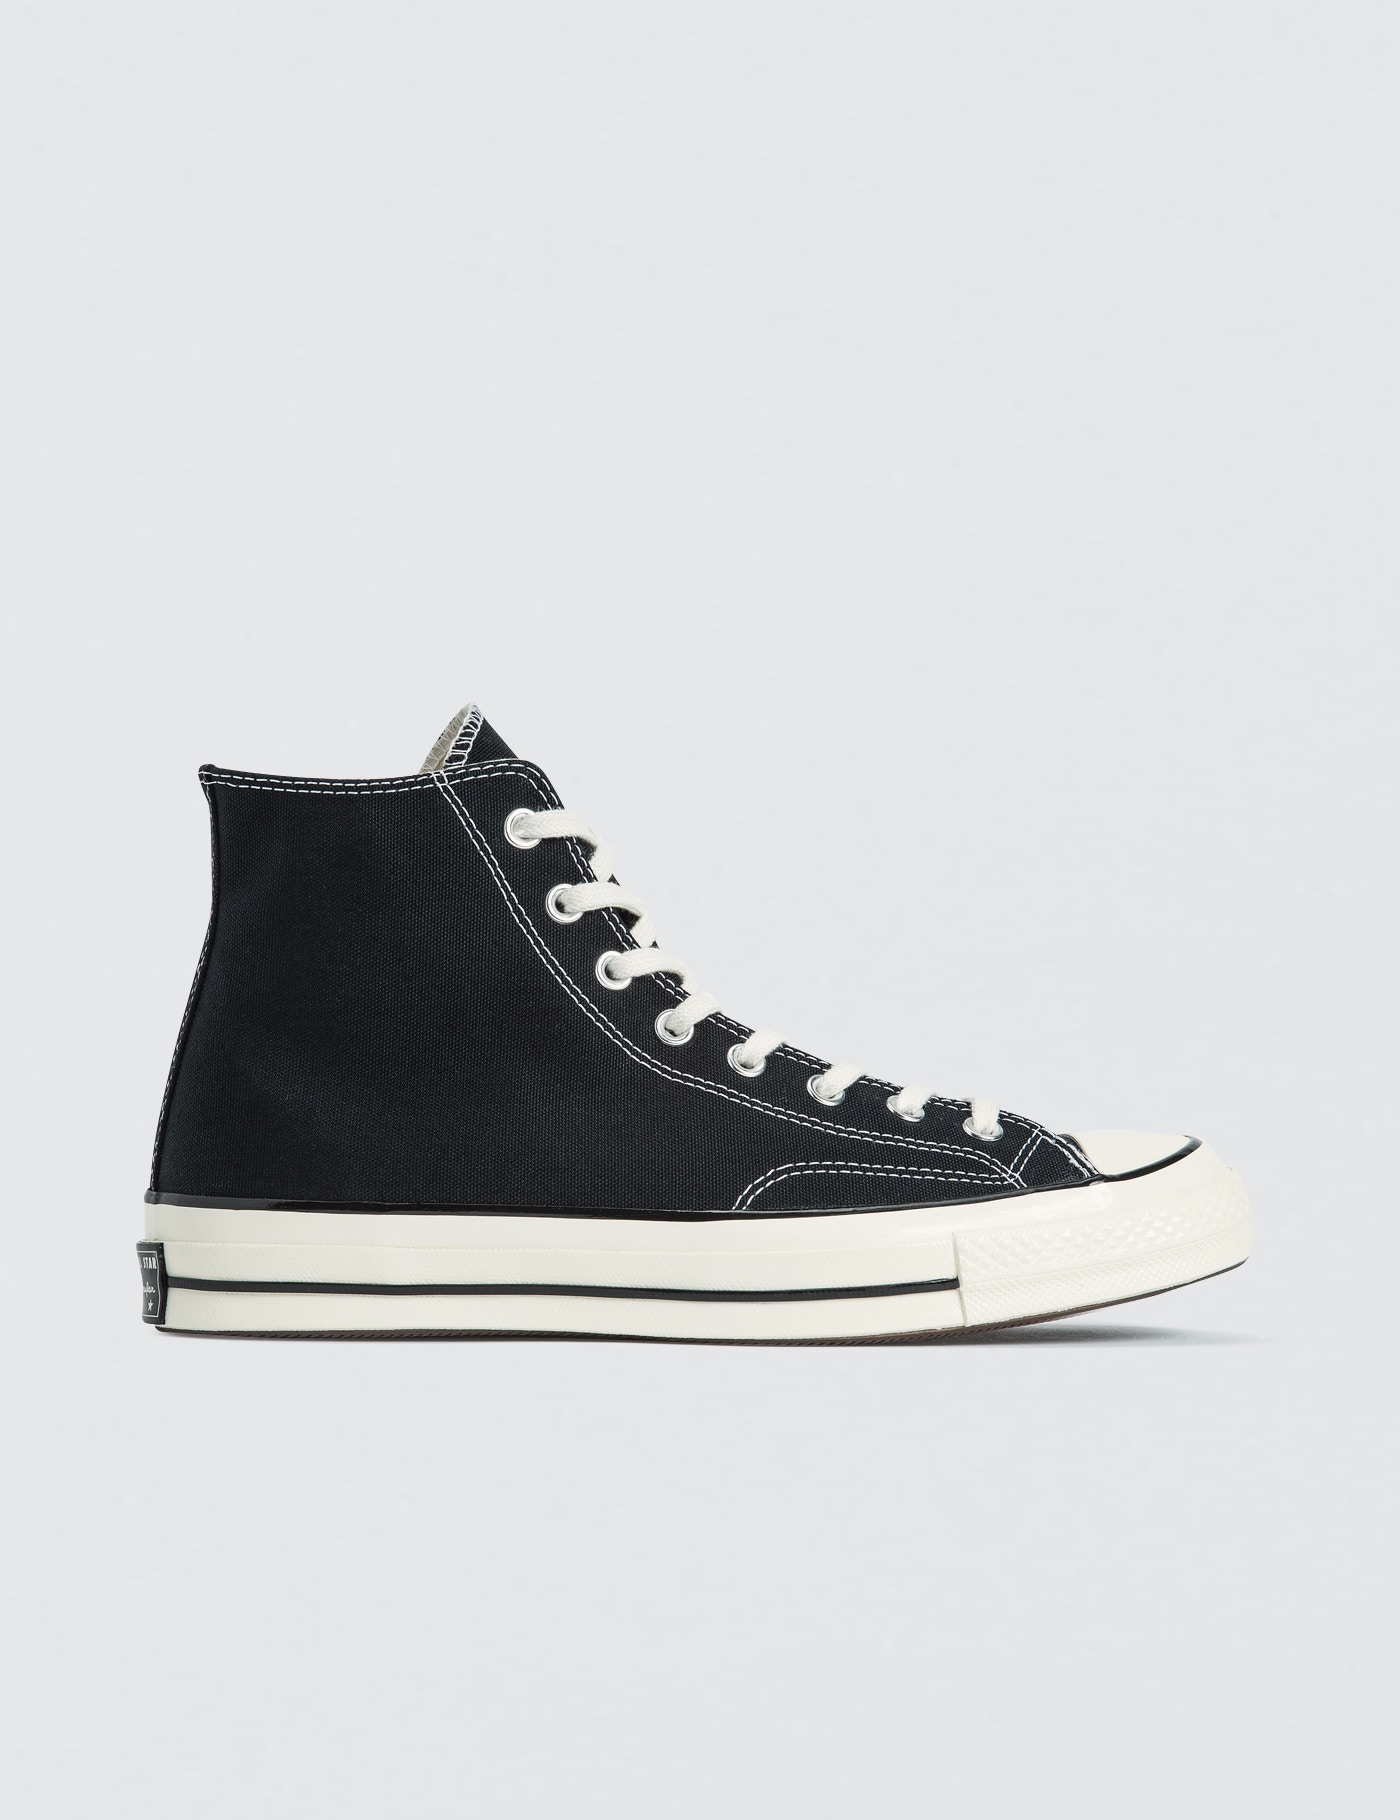 hot sales 653c5 867a9 Chuck Taylor All Star 70, Converse